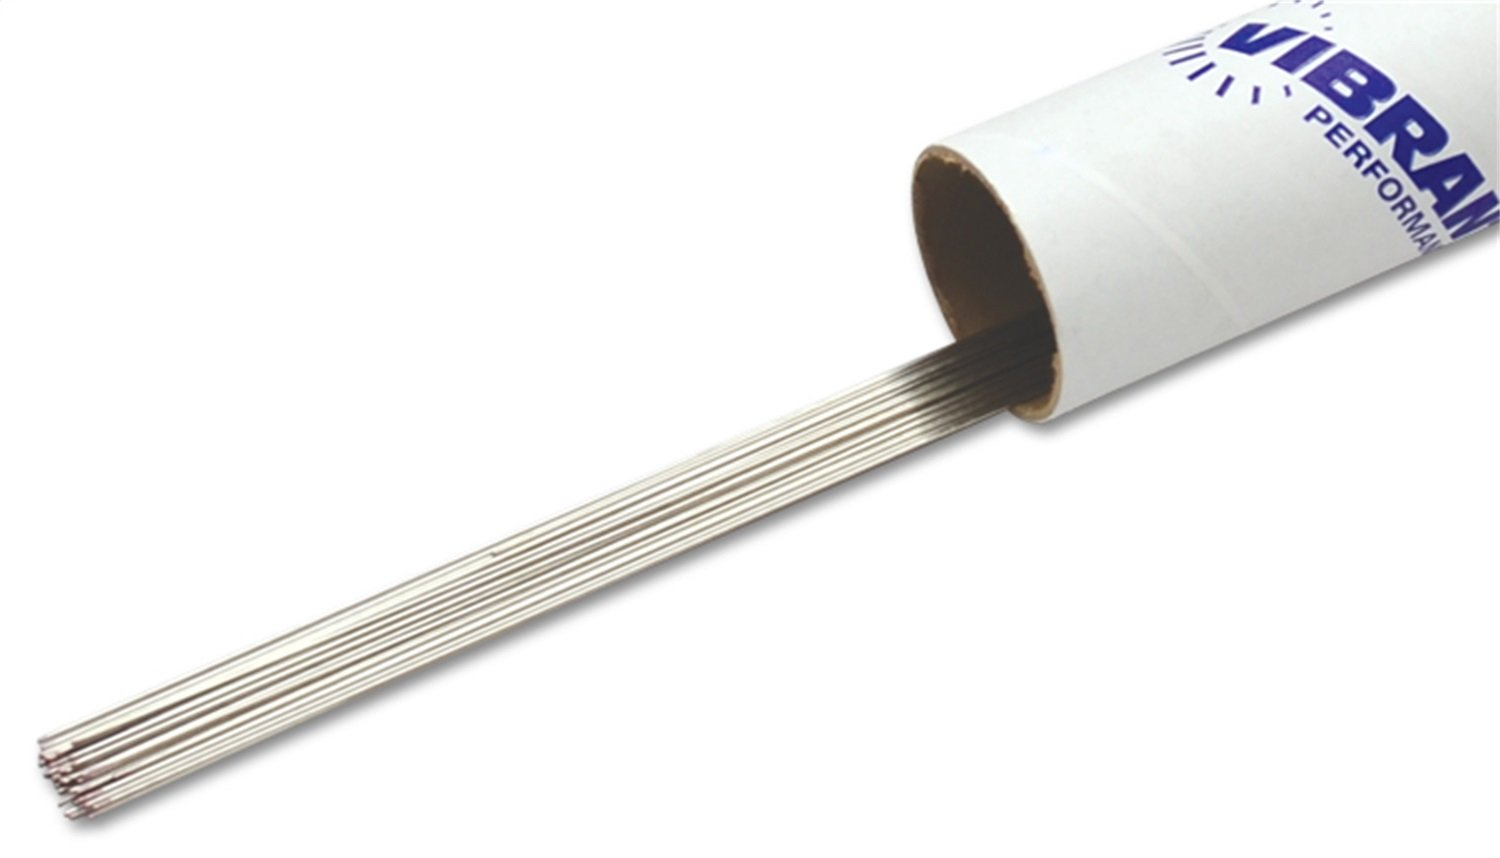 Vibrant Performance 29131 TIG Wire Stainless Steel ER308L 0.035 in. Thick/0.9mm 39.5 in. Long Rod 1lb Box TIG Wire Stainless Steel ER308L